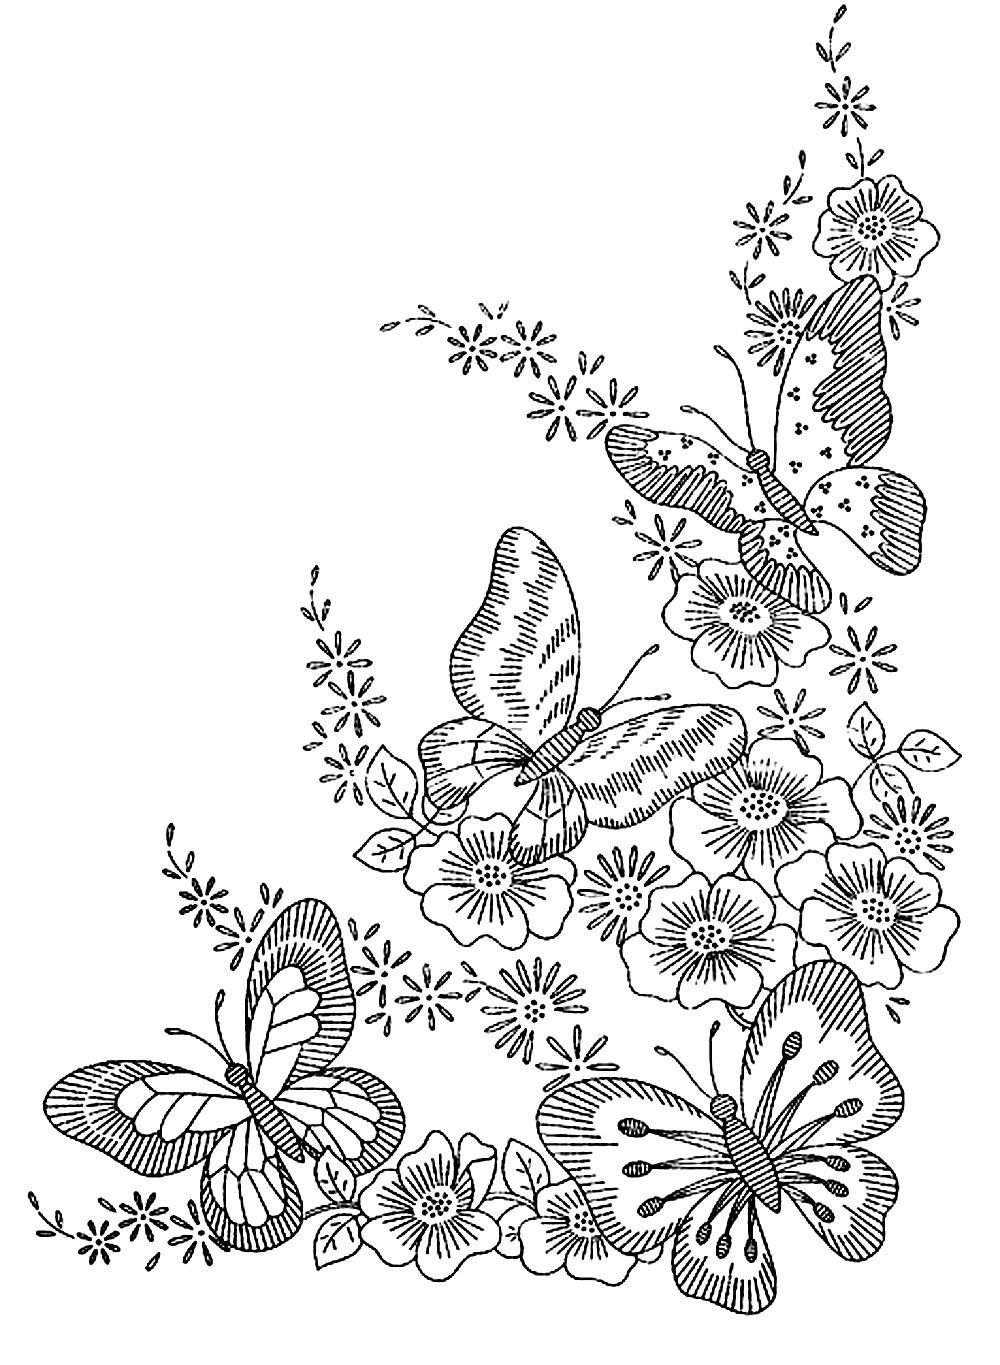 To print this free coloring page «coloring-adult-difficult